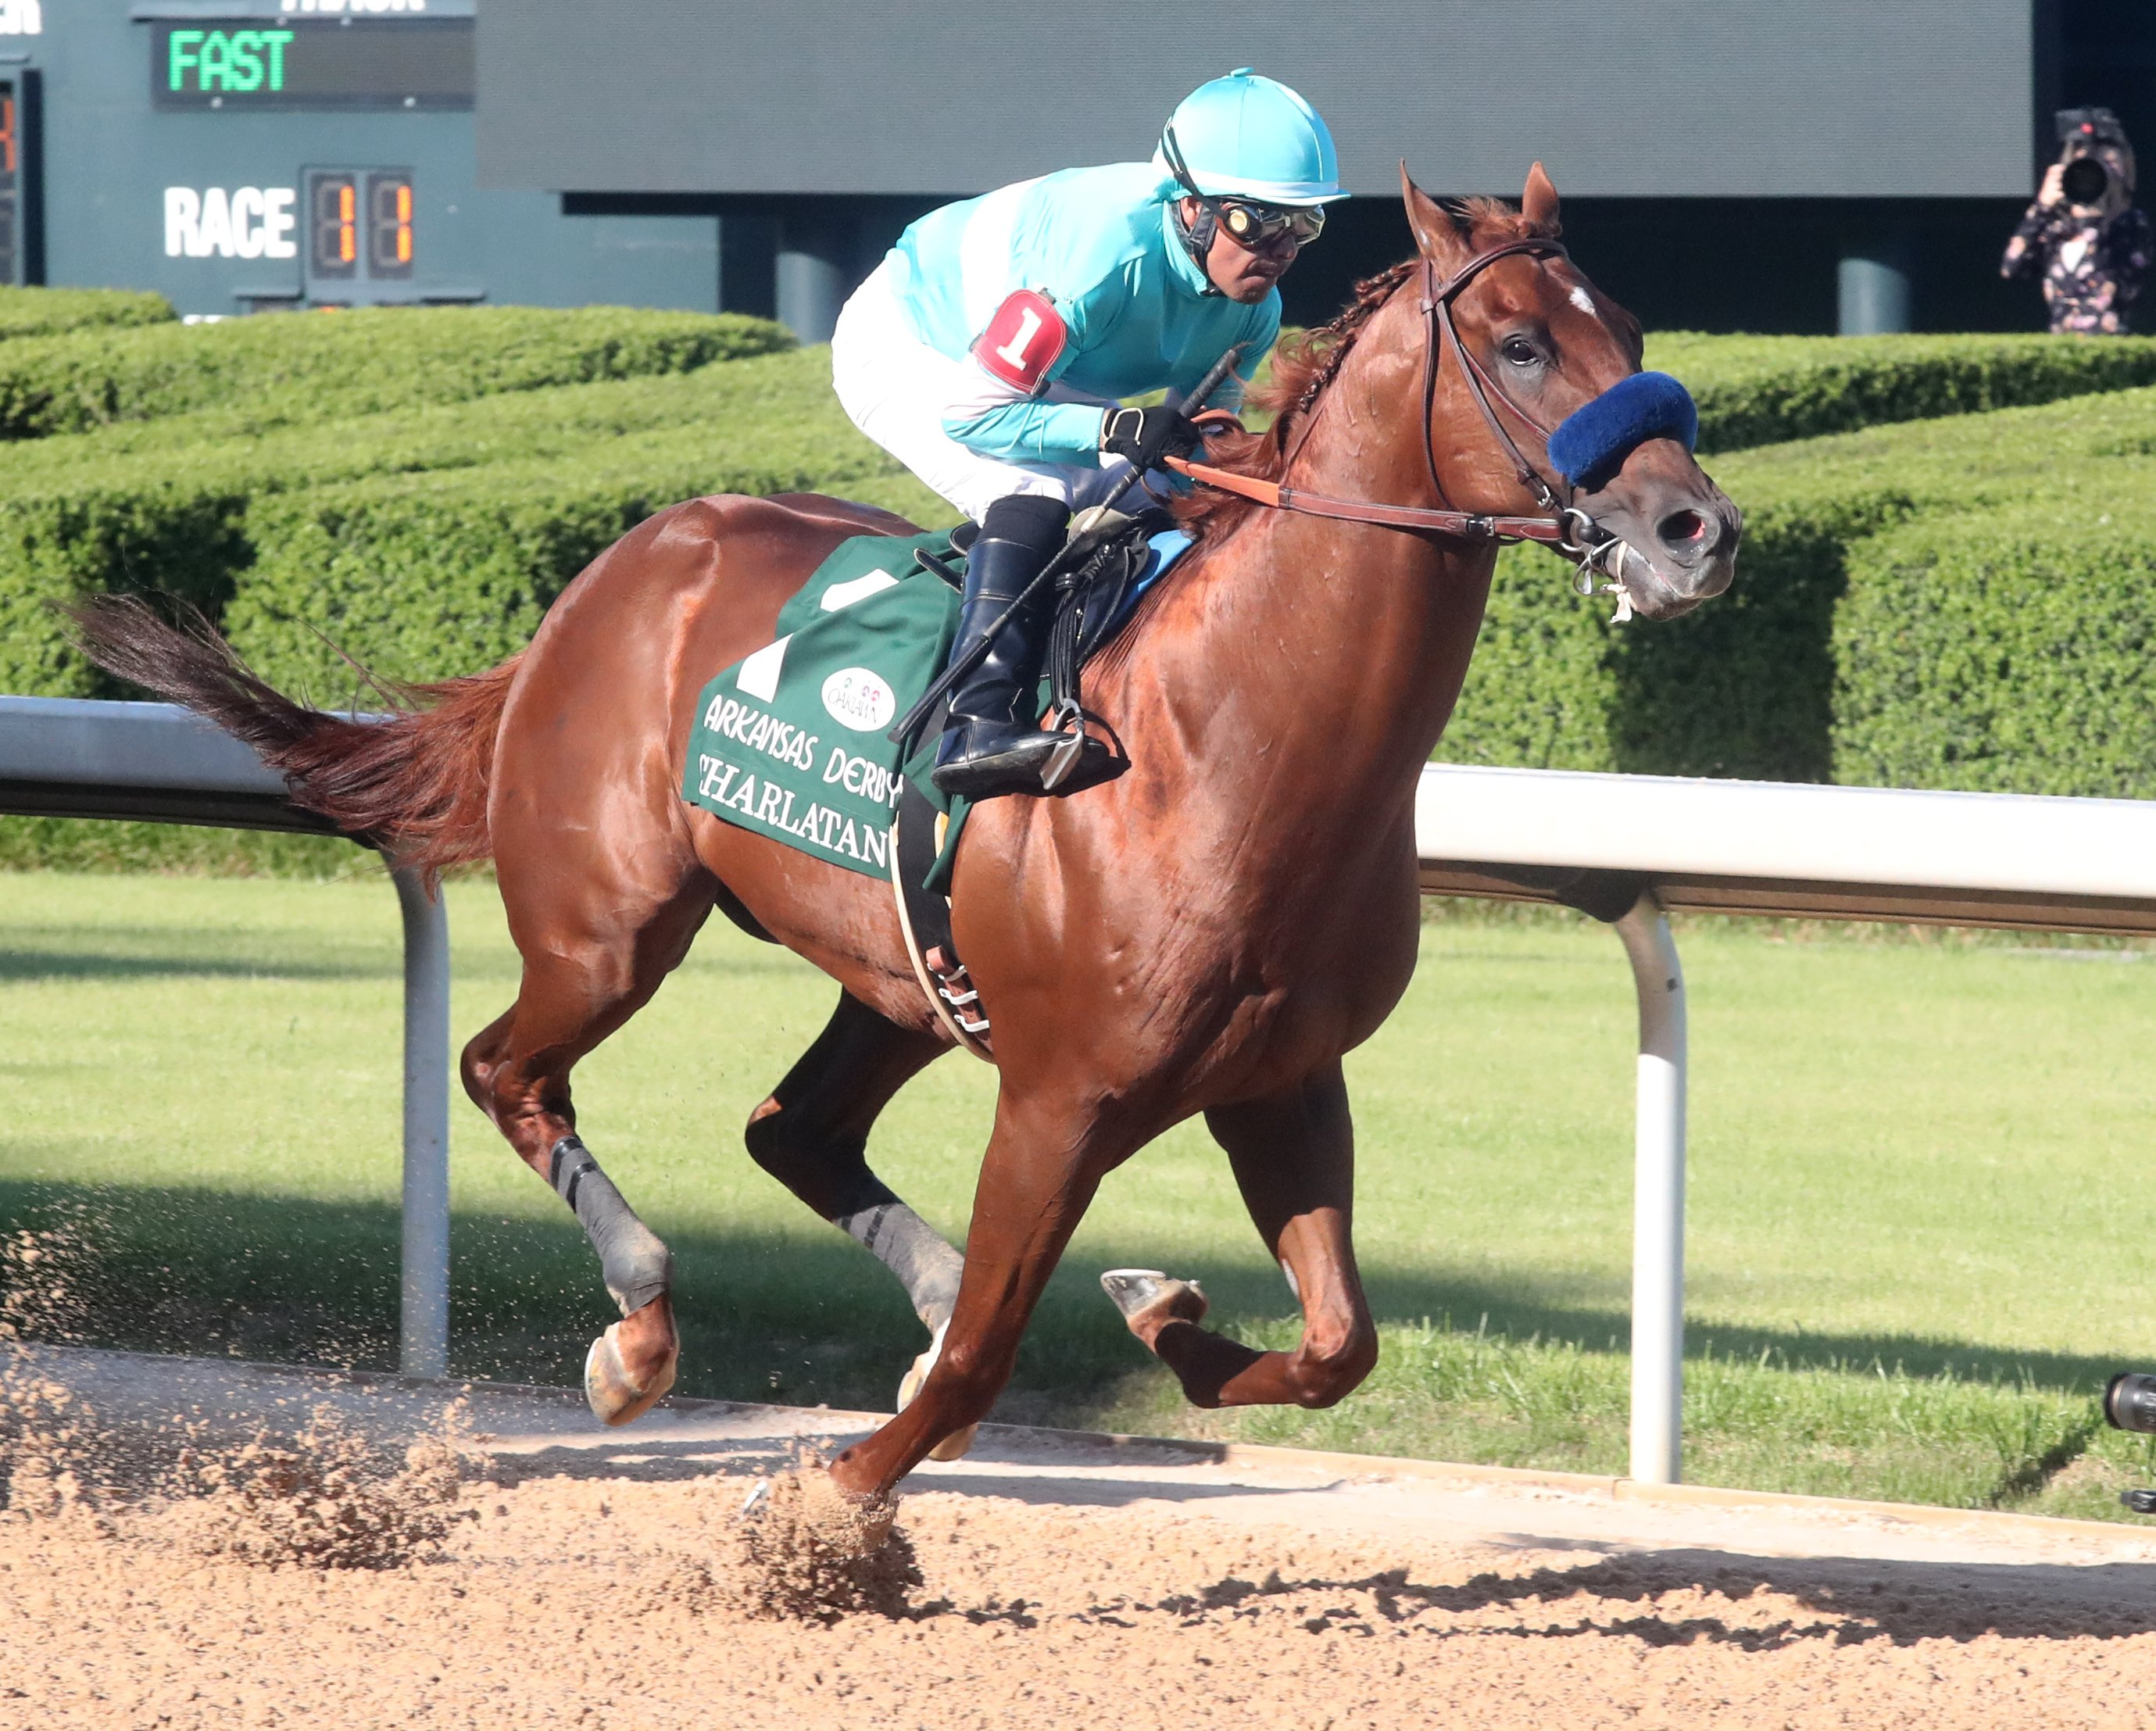 Doctor Weighs In On Reported Oaklawn Positives